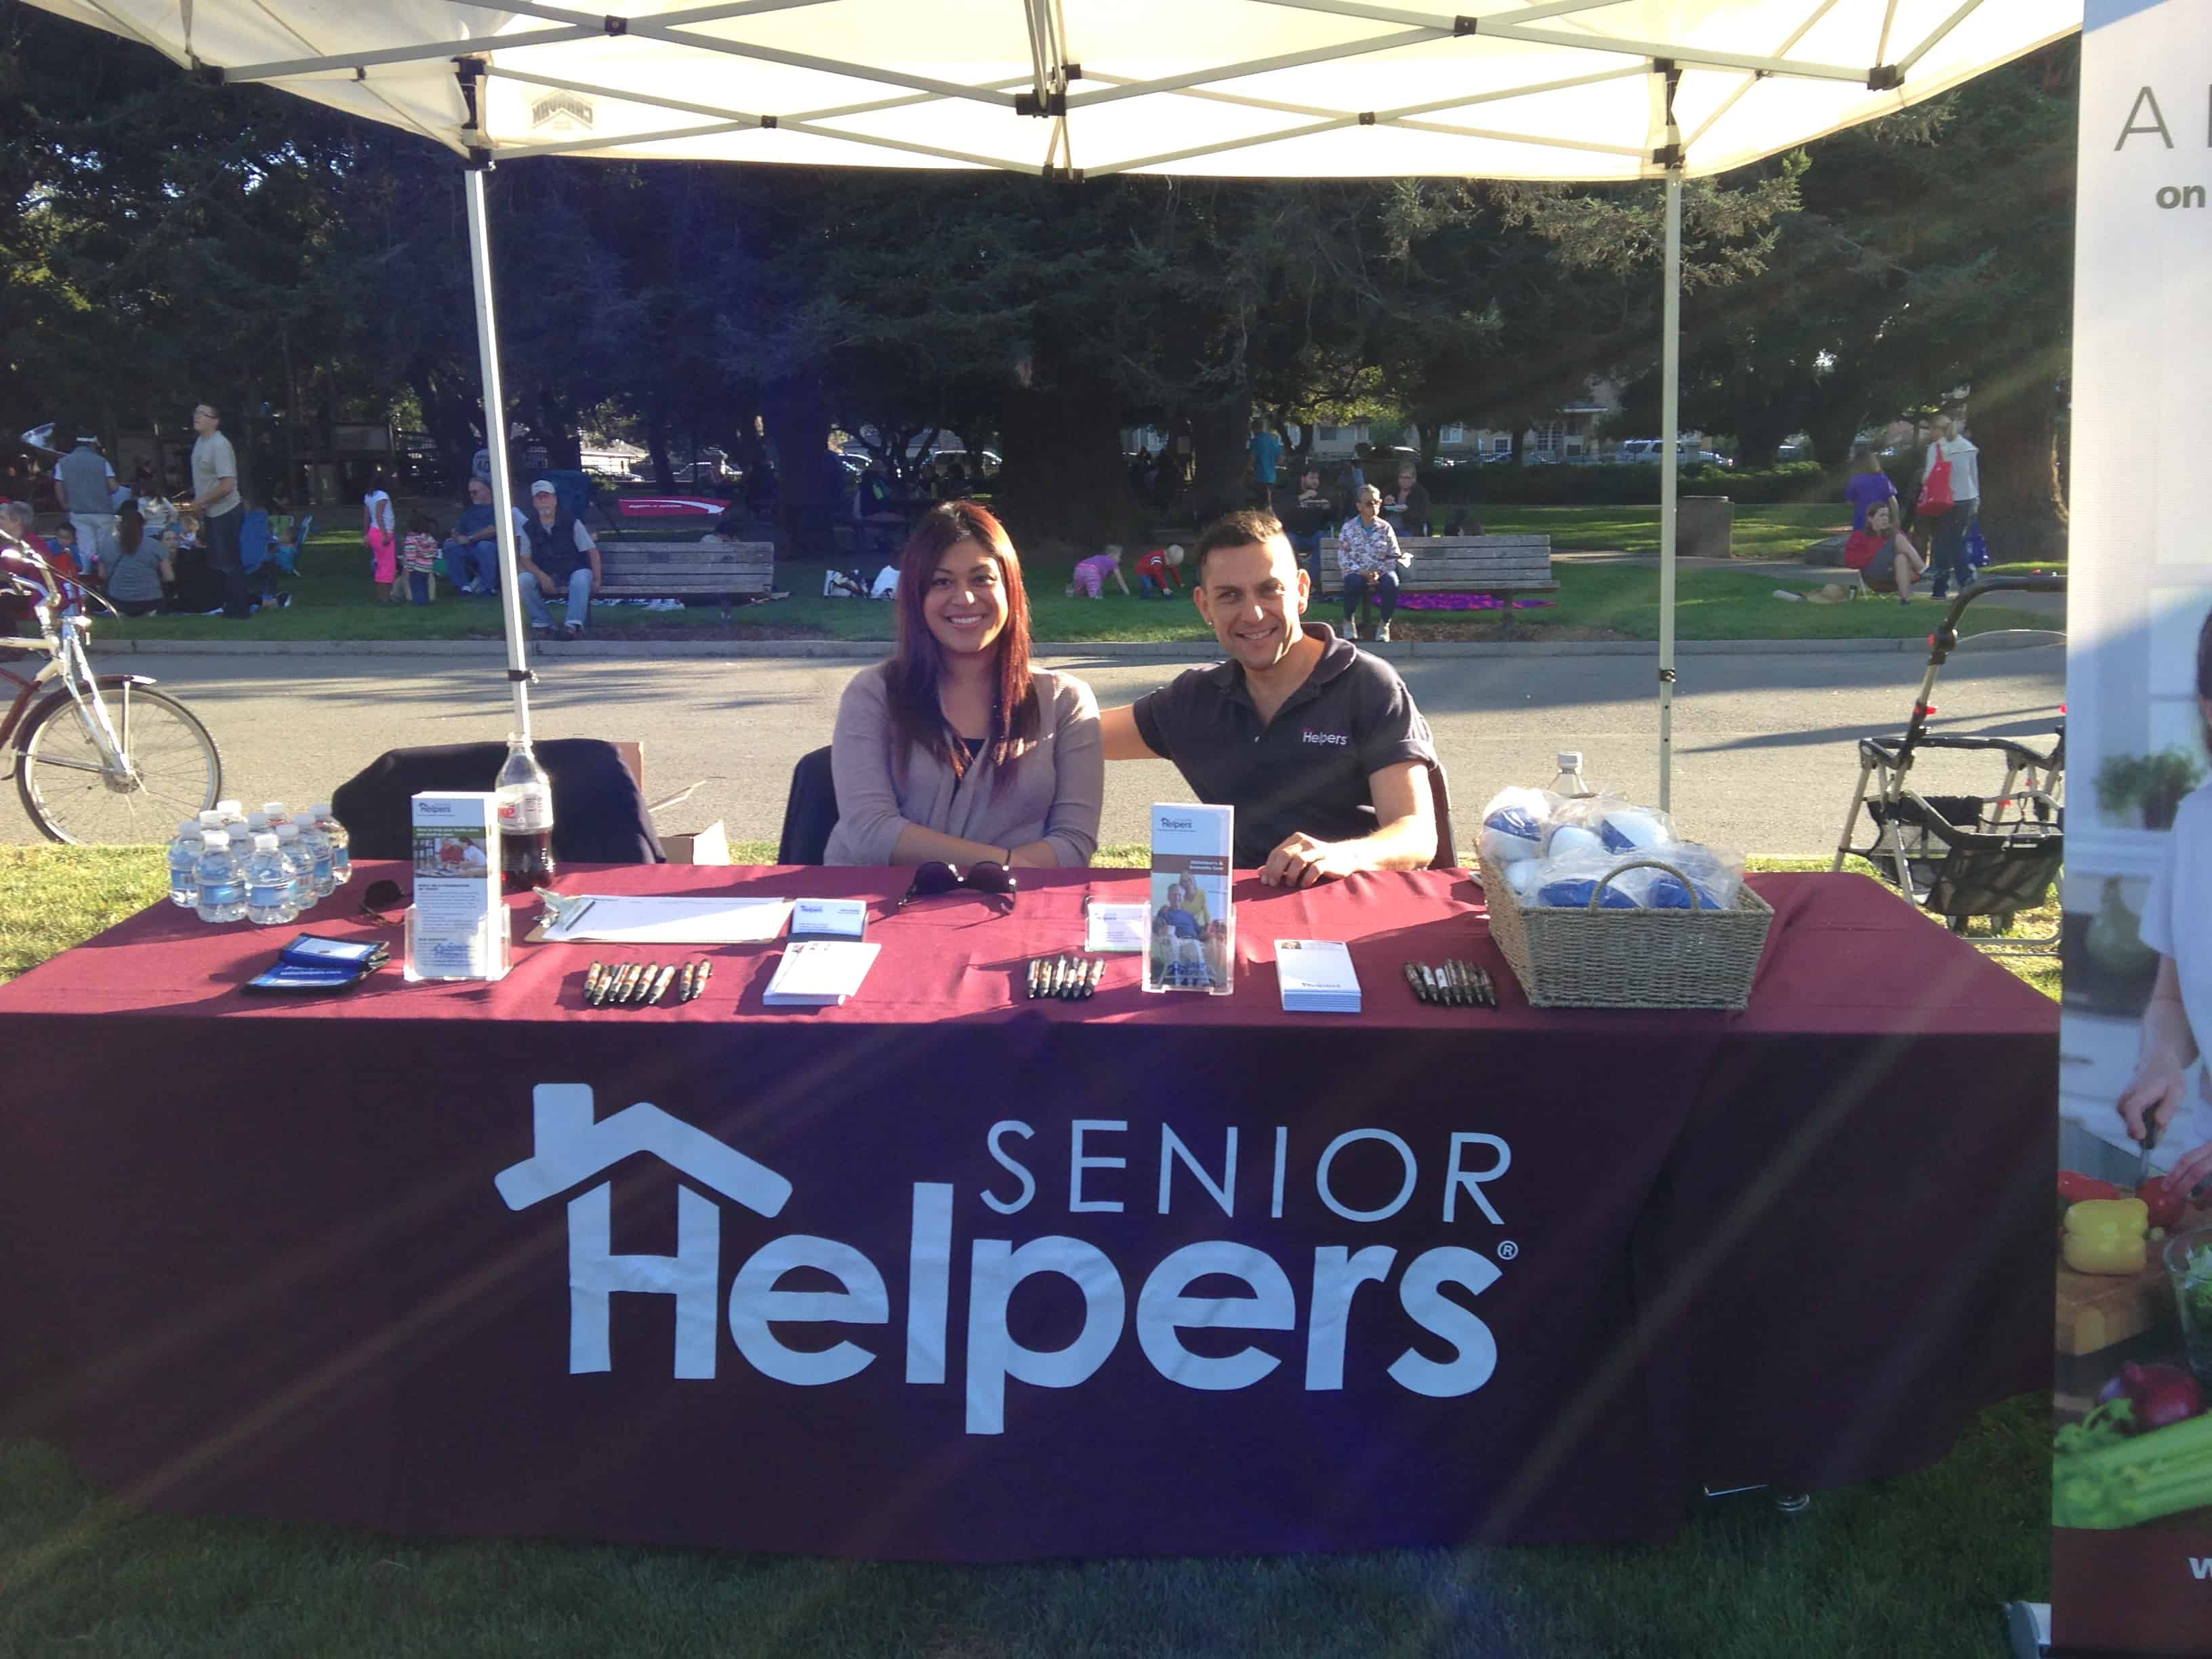 Senior Helpers sponsored the San Mateo Music Series Concert